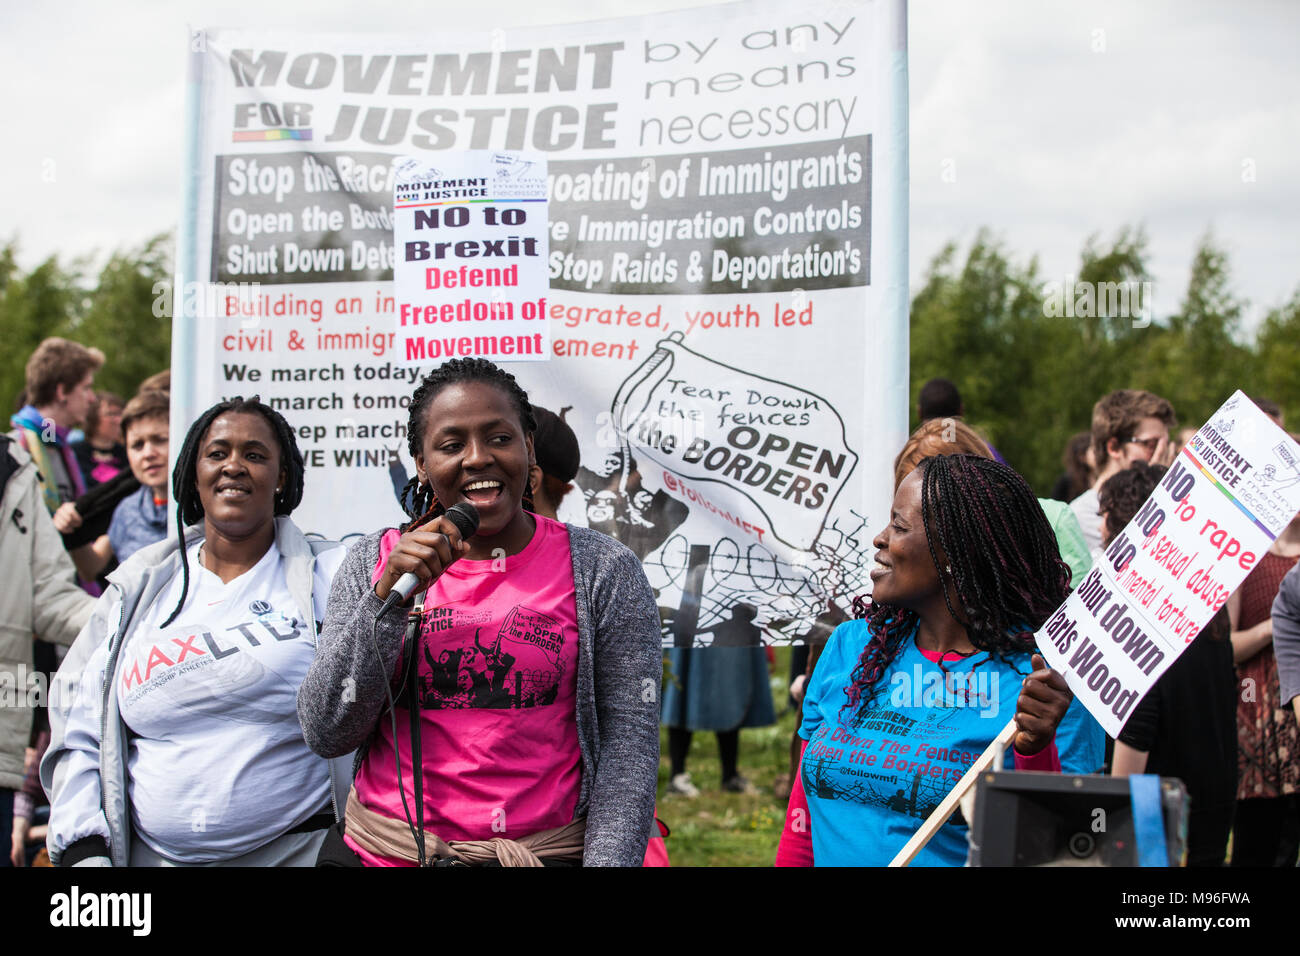 Milton Ernest, UK. 13th May, 2017. Campaigners against immigration detention attend a protest outside Yarl's Wood Immigration Removal Centre. - Stock Image